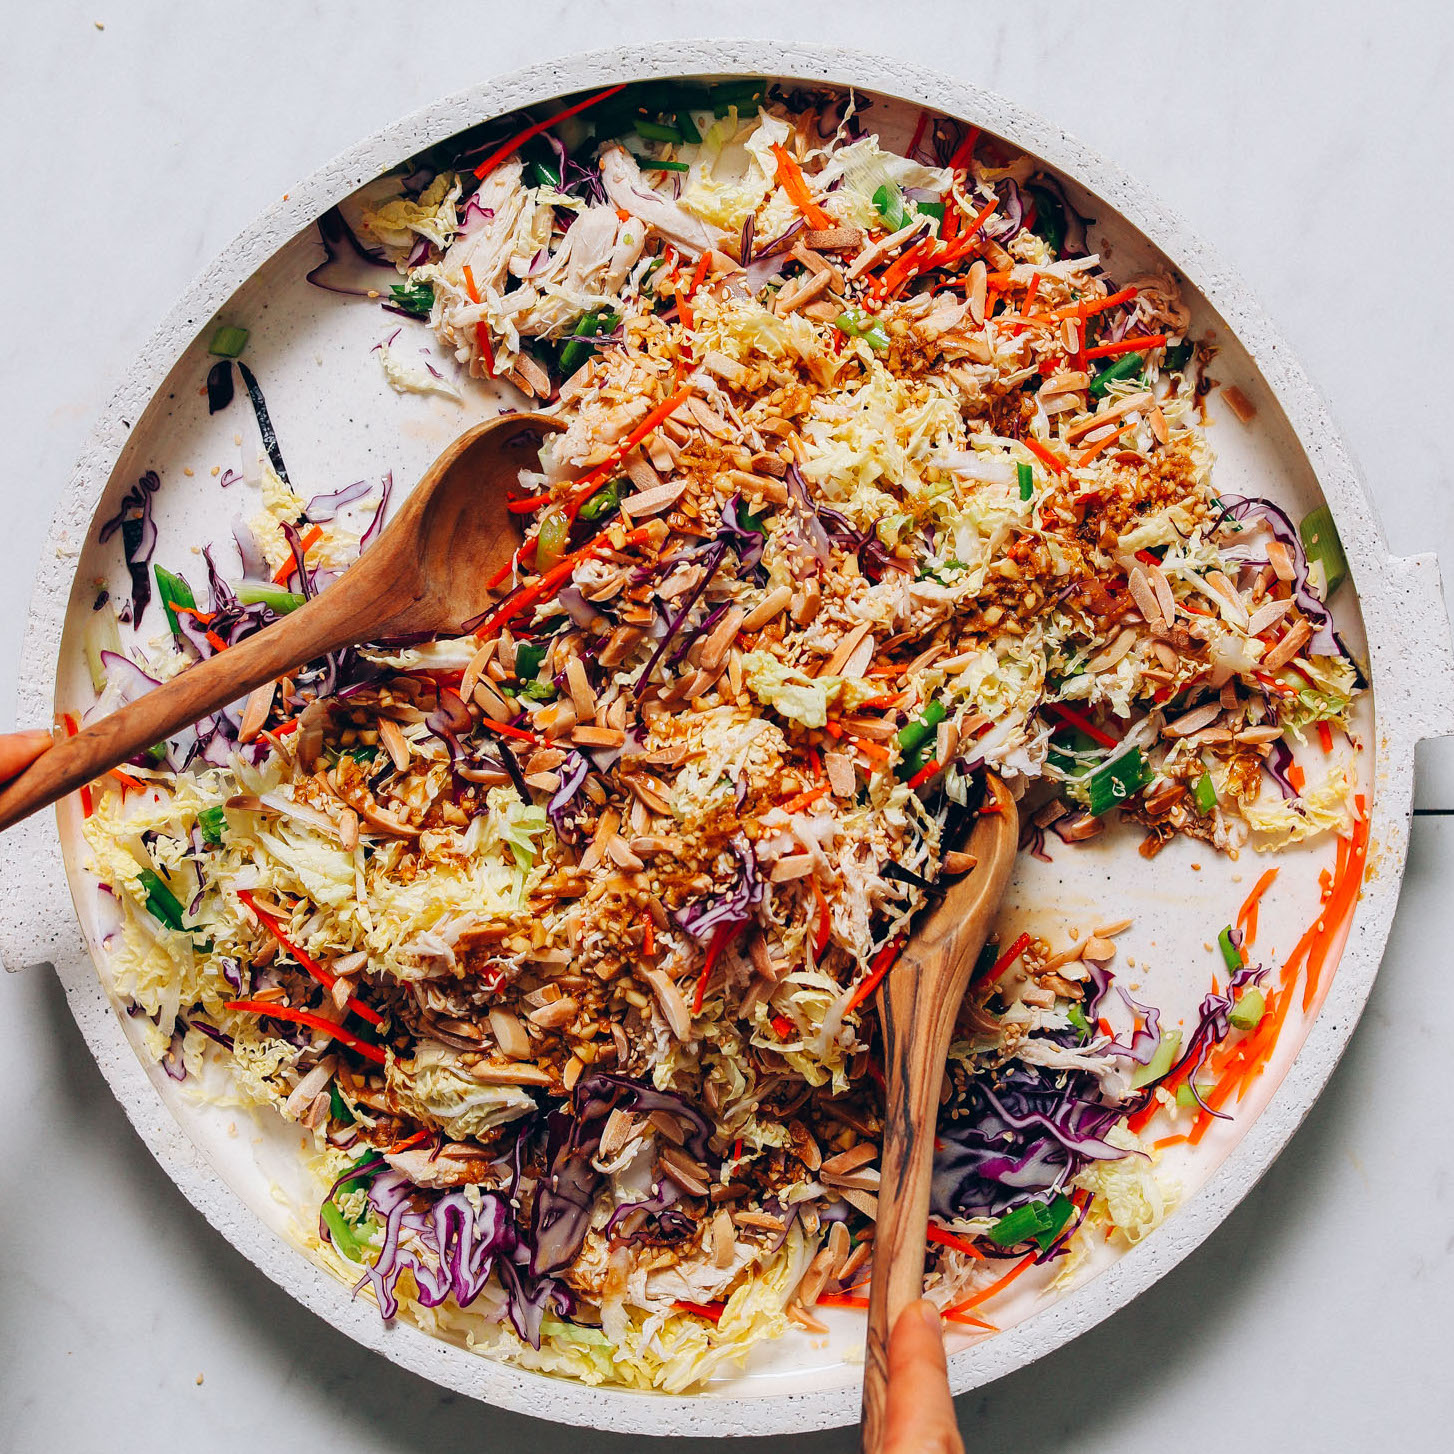 Using salad tongs to pick up a serving of gluten-free Crunchy Cabbage Slaw with Sesame Ginger Dressing